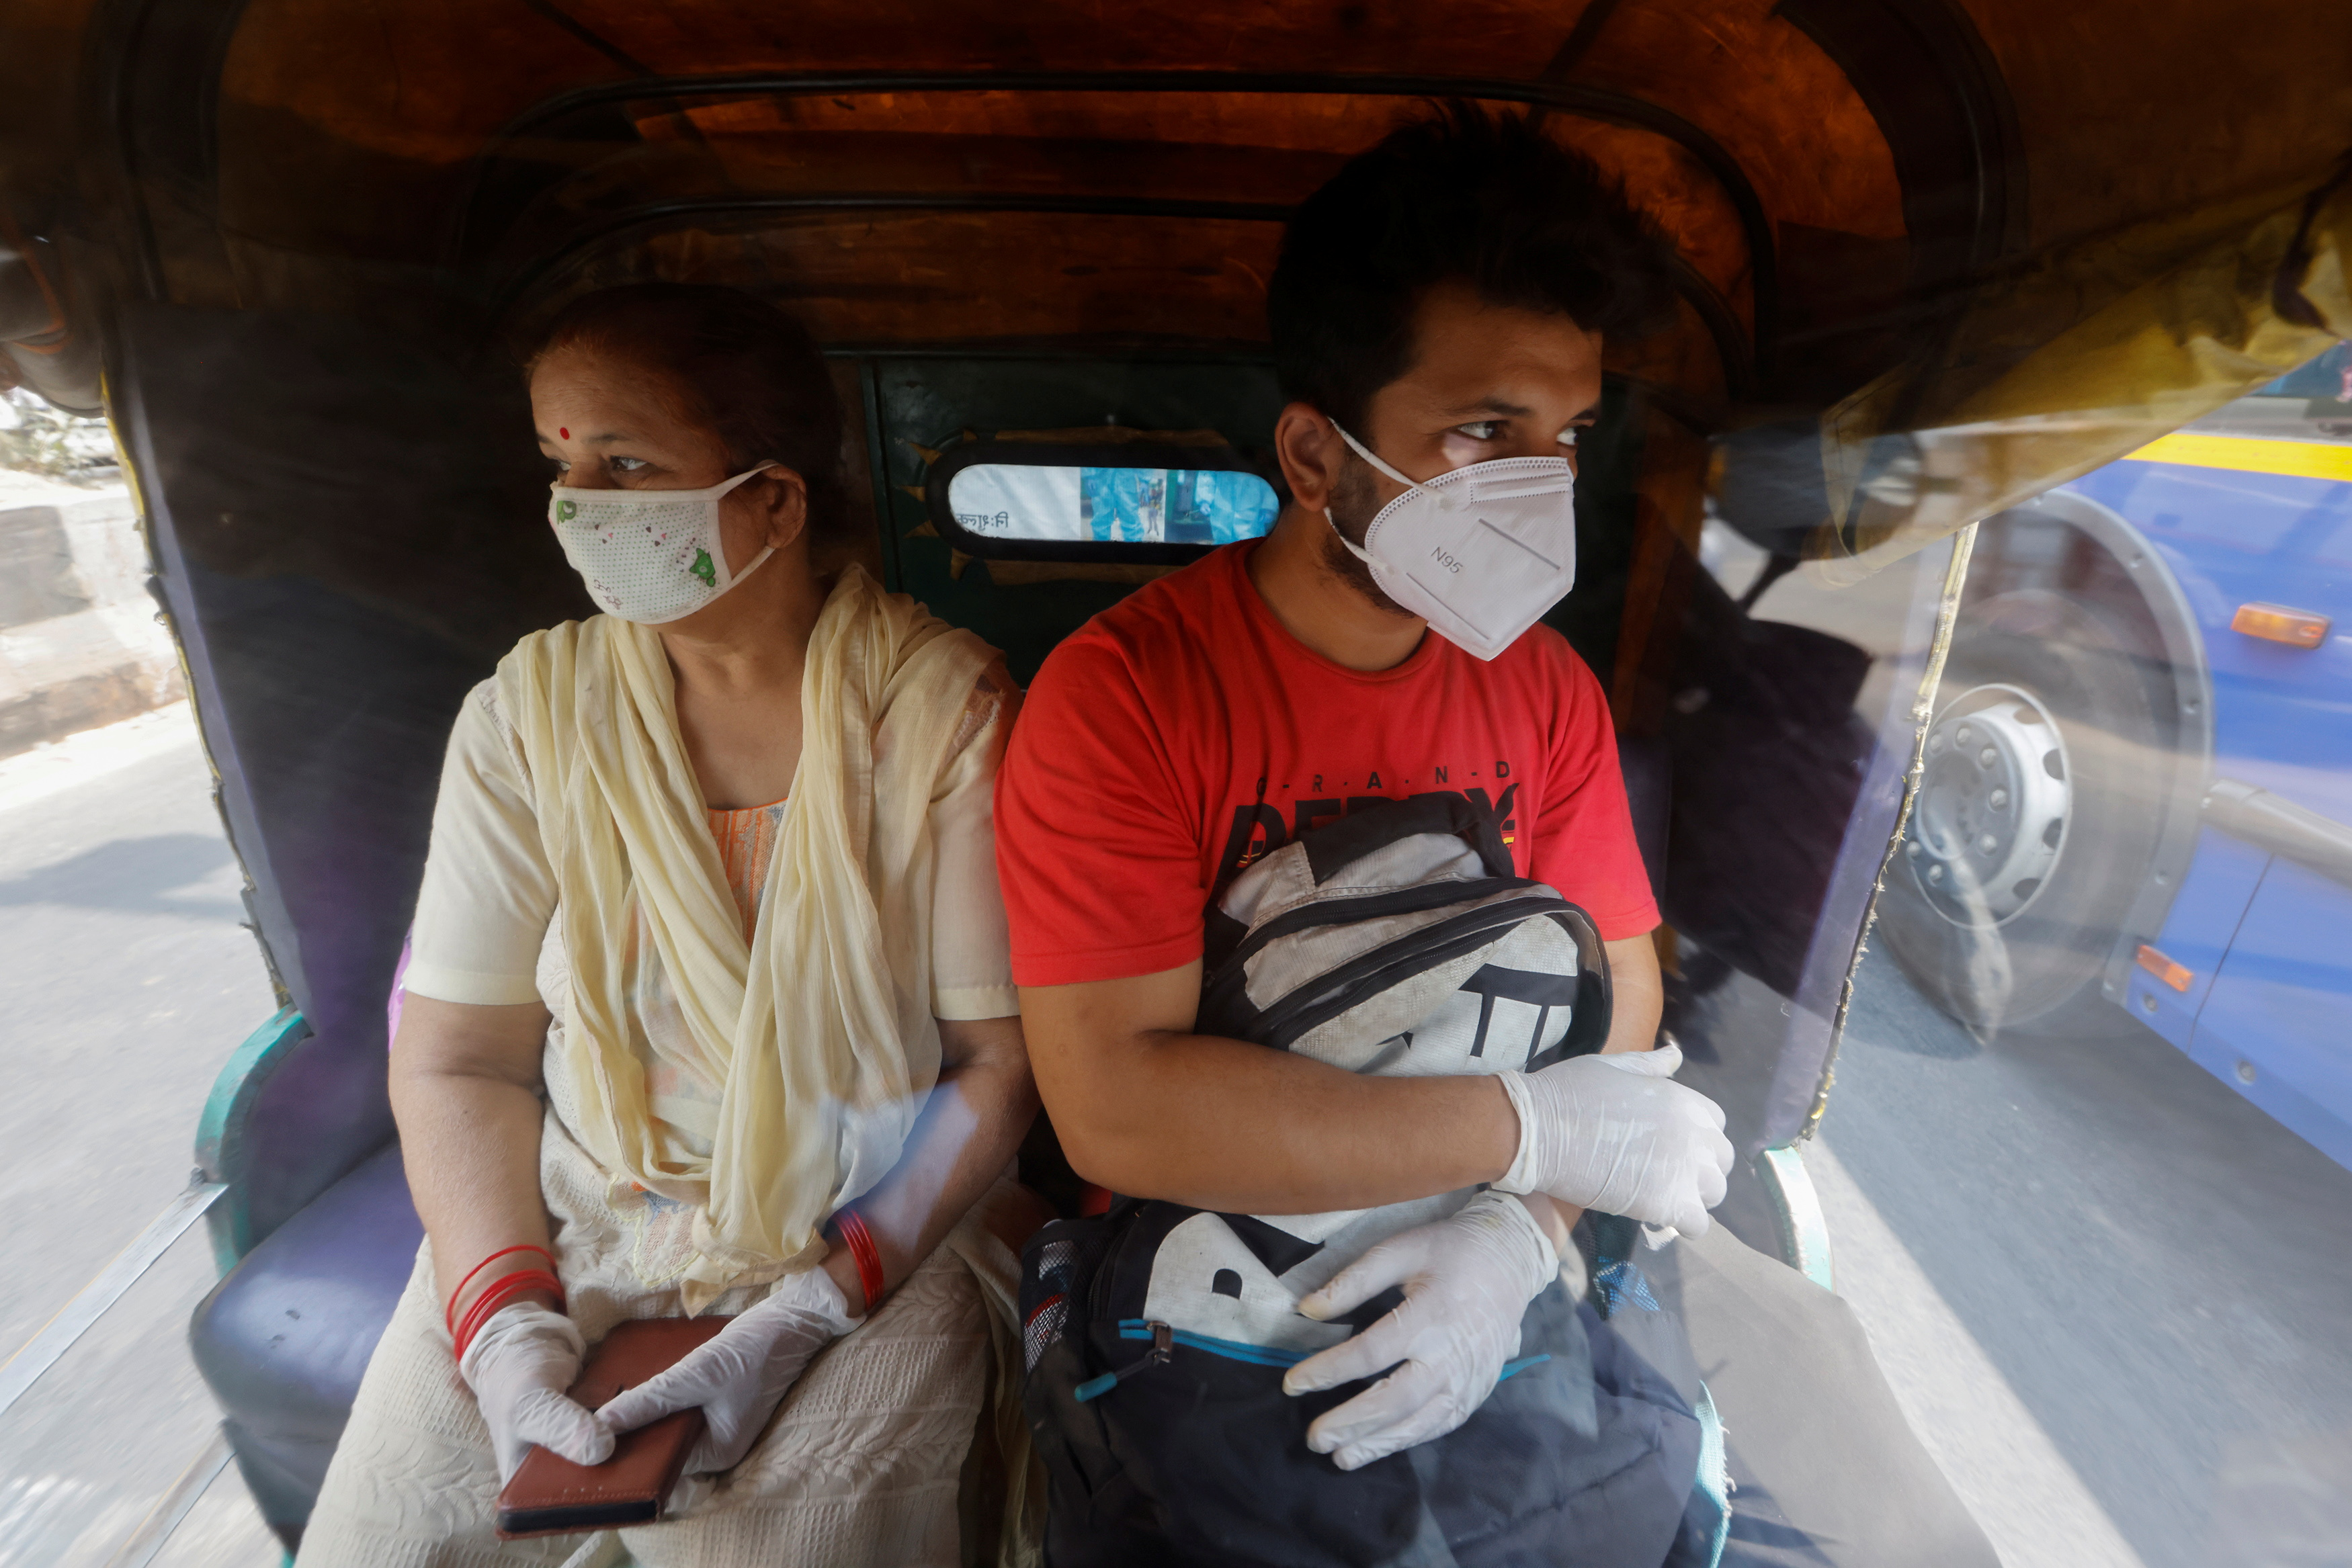 Rahul Malhotra, whose father is admitted in Lok Nayak Jai Prakash Narayan Hospital (LNJP), one of India's largest facilities for coronavirus disease (COVID-19) patients only, and his mother, ride an auto rickshaw ambulance prepared to transfer people suffering from the disease and their relatives for free, in New Delhi, India May 6, 2021. REUTERS/Adnan Abidi